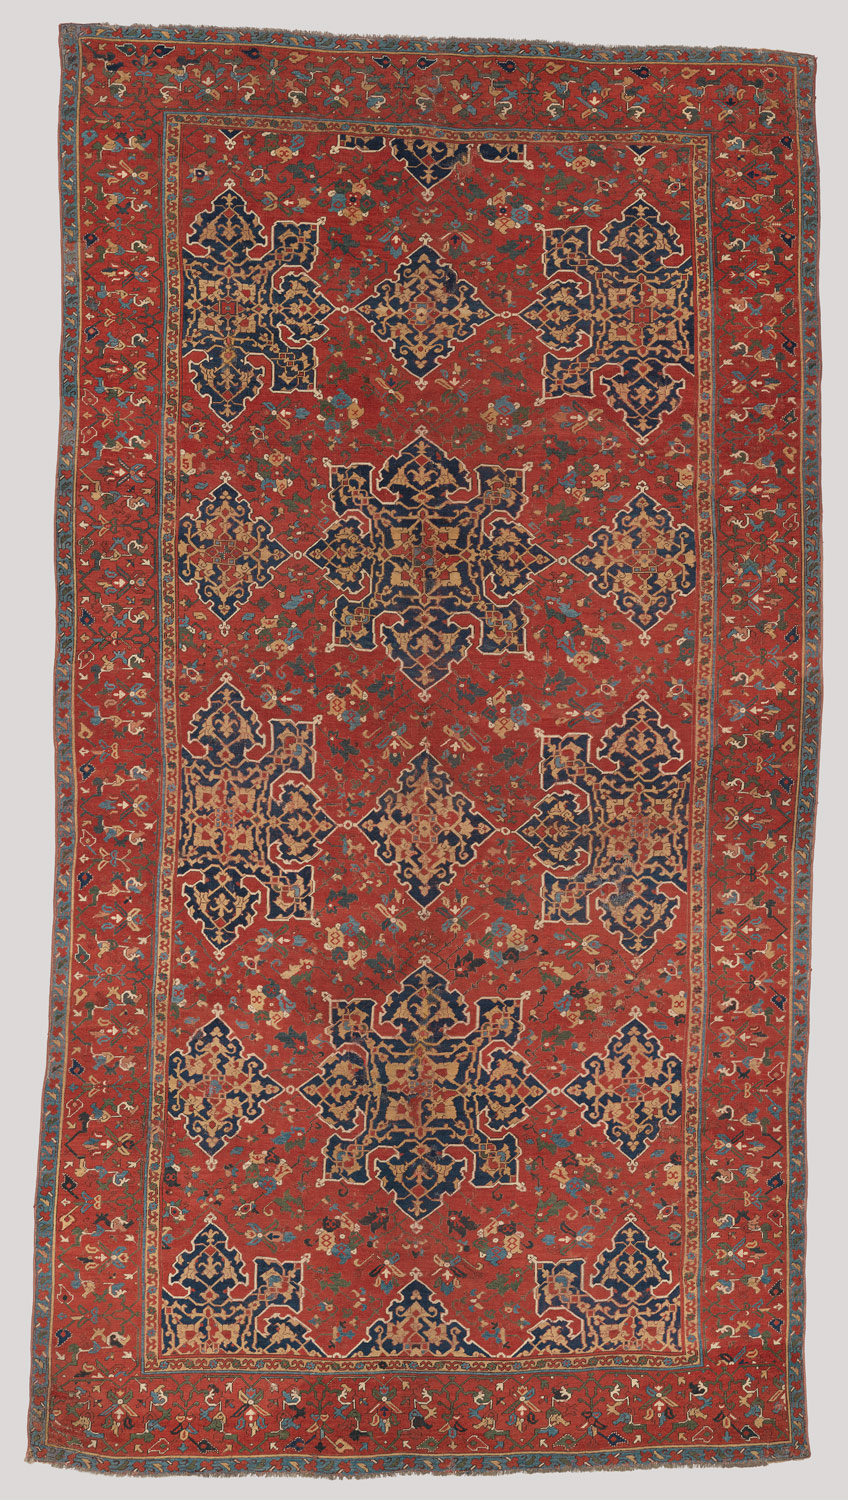 Star Ushak carpet